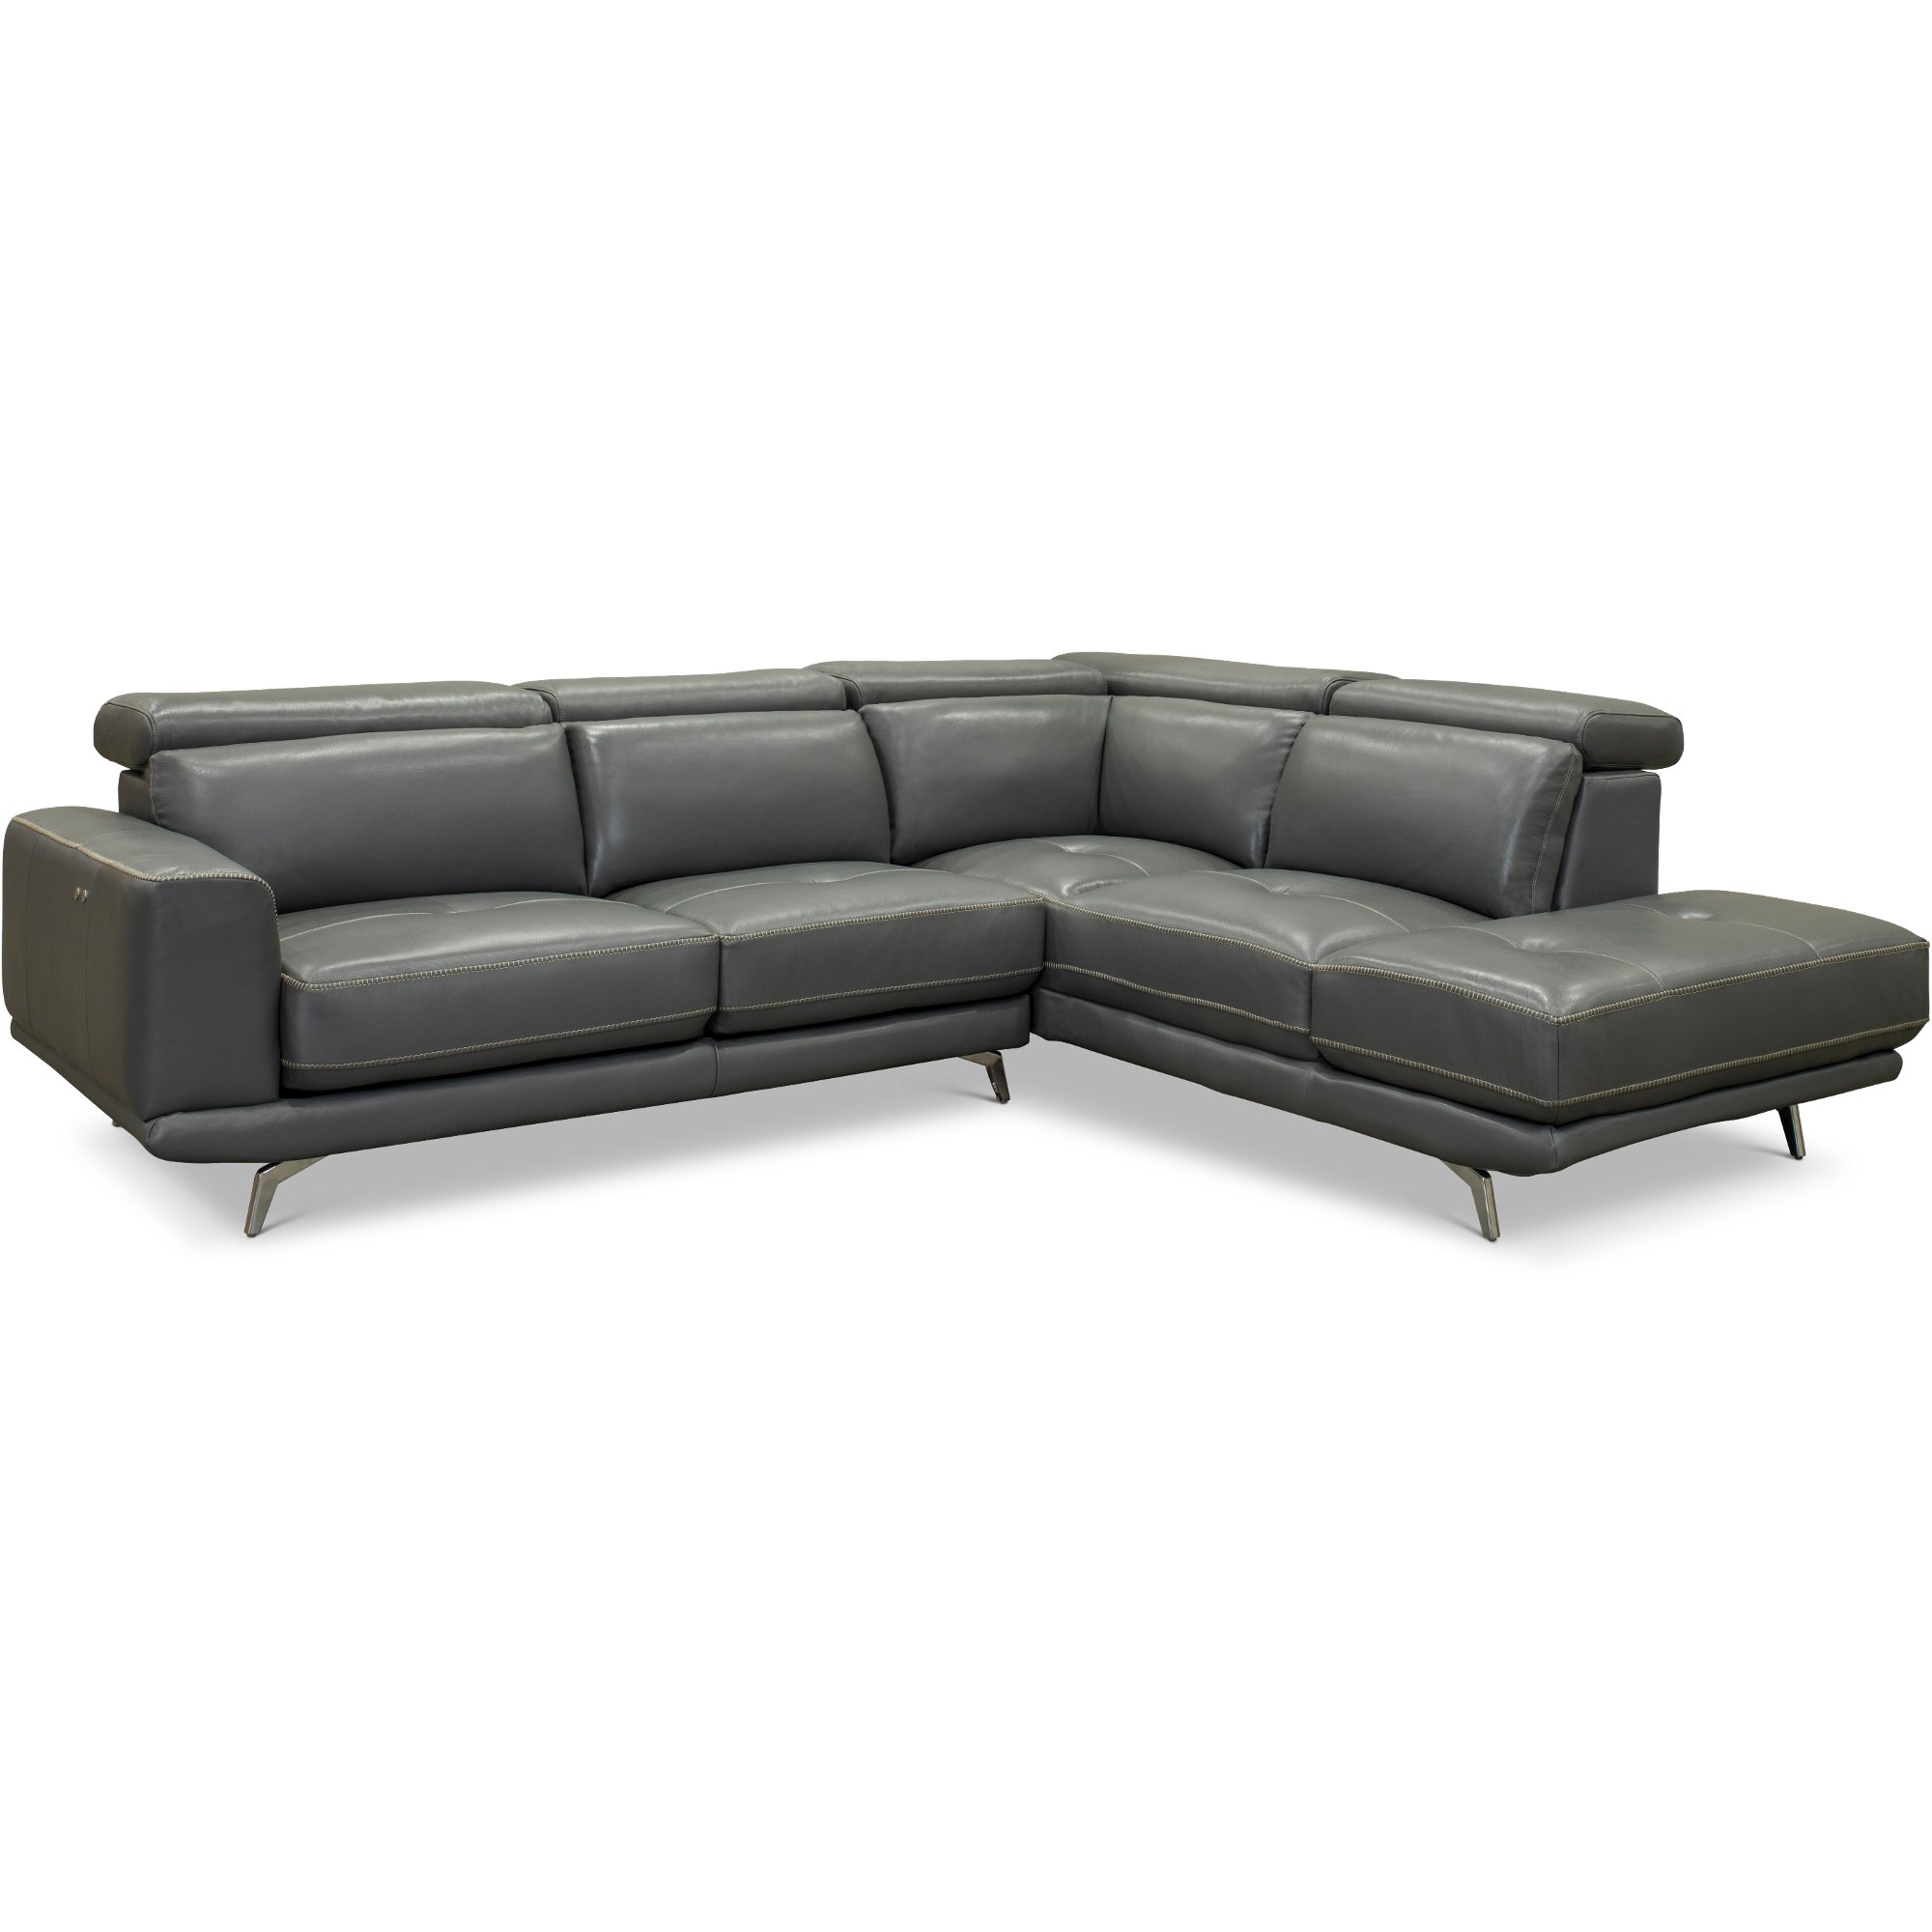 Dark Gray Leather-Match Power Reclining Sectional Sofa with Right Chaise -  Baron